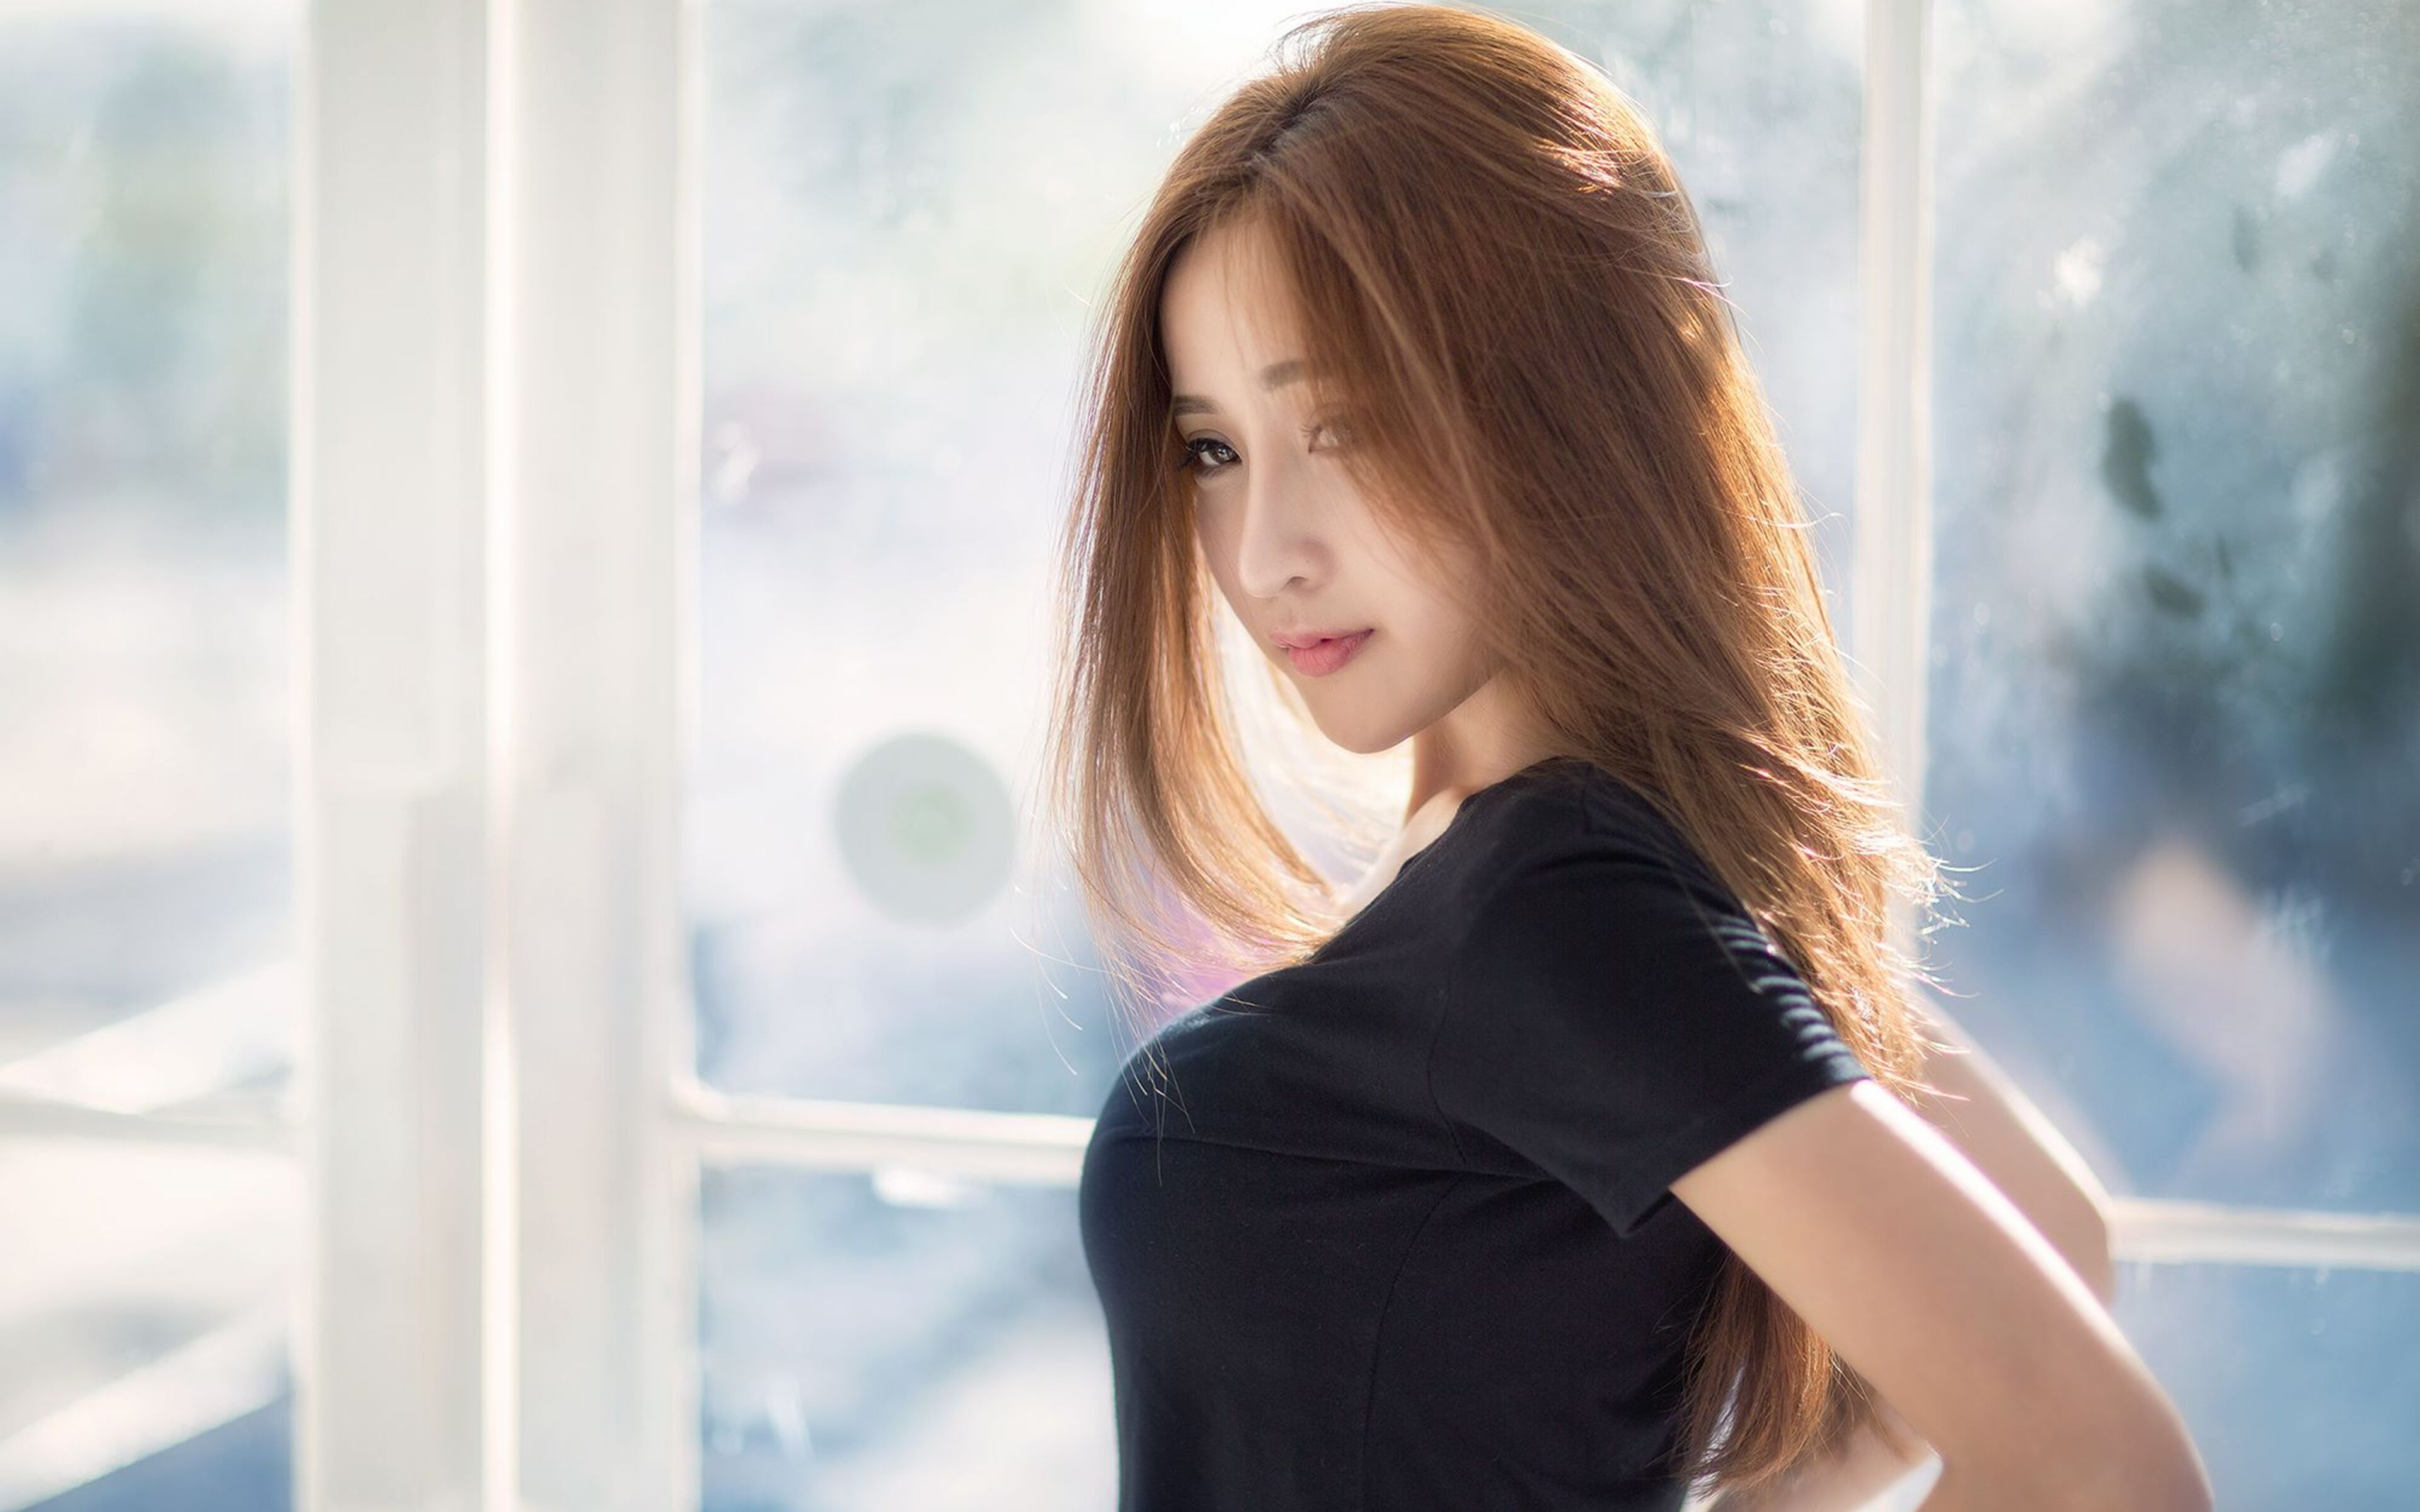 3840x2400 Asian Hot Girl 4k Hd 4k Wallpapers Images Backgrounds